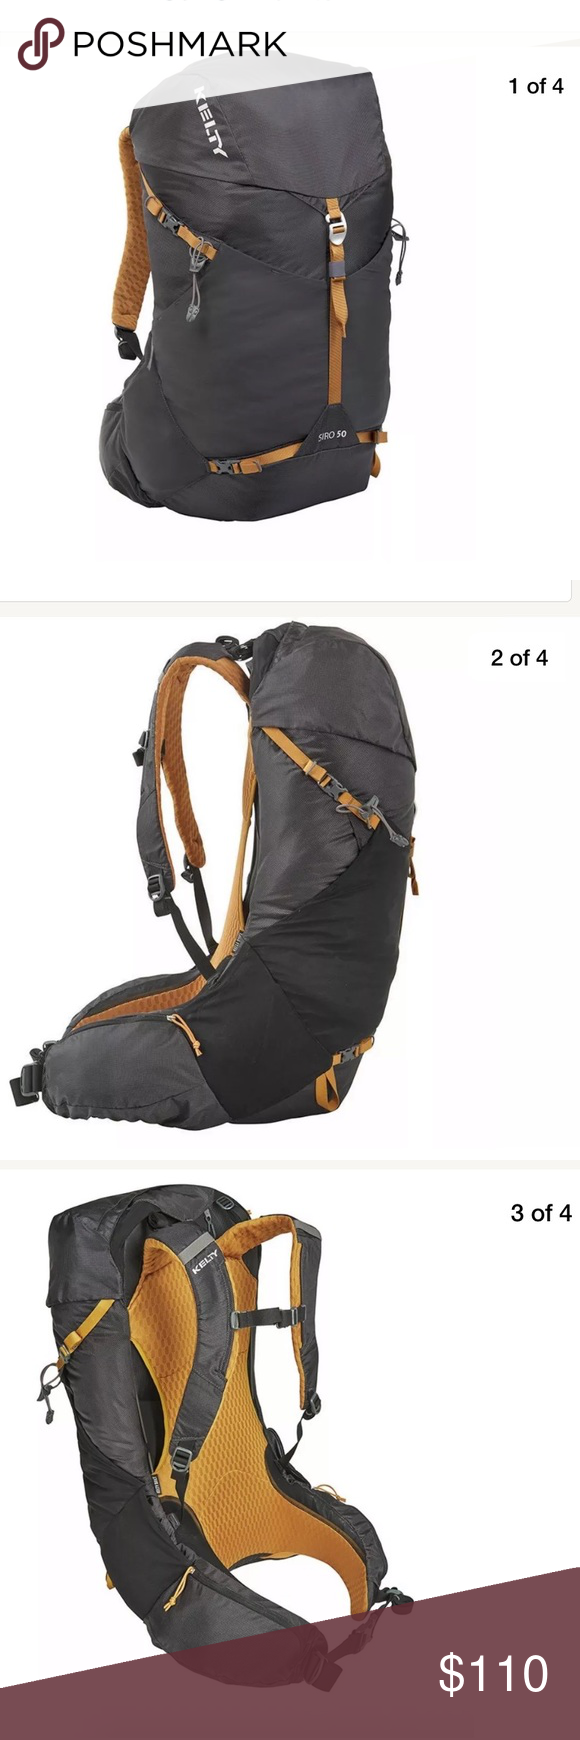 4fc0acd8112 KELTY SIRO 50L BACKPACK S/M Patagonia, osprey, arcteryx, the north face,  backpack, backpacking, kelty Bags Backpacks